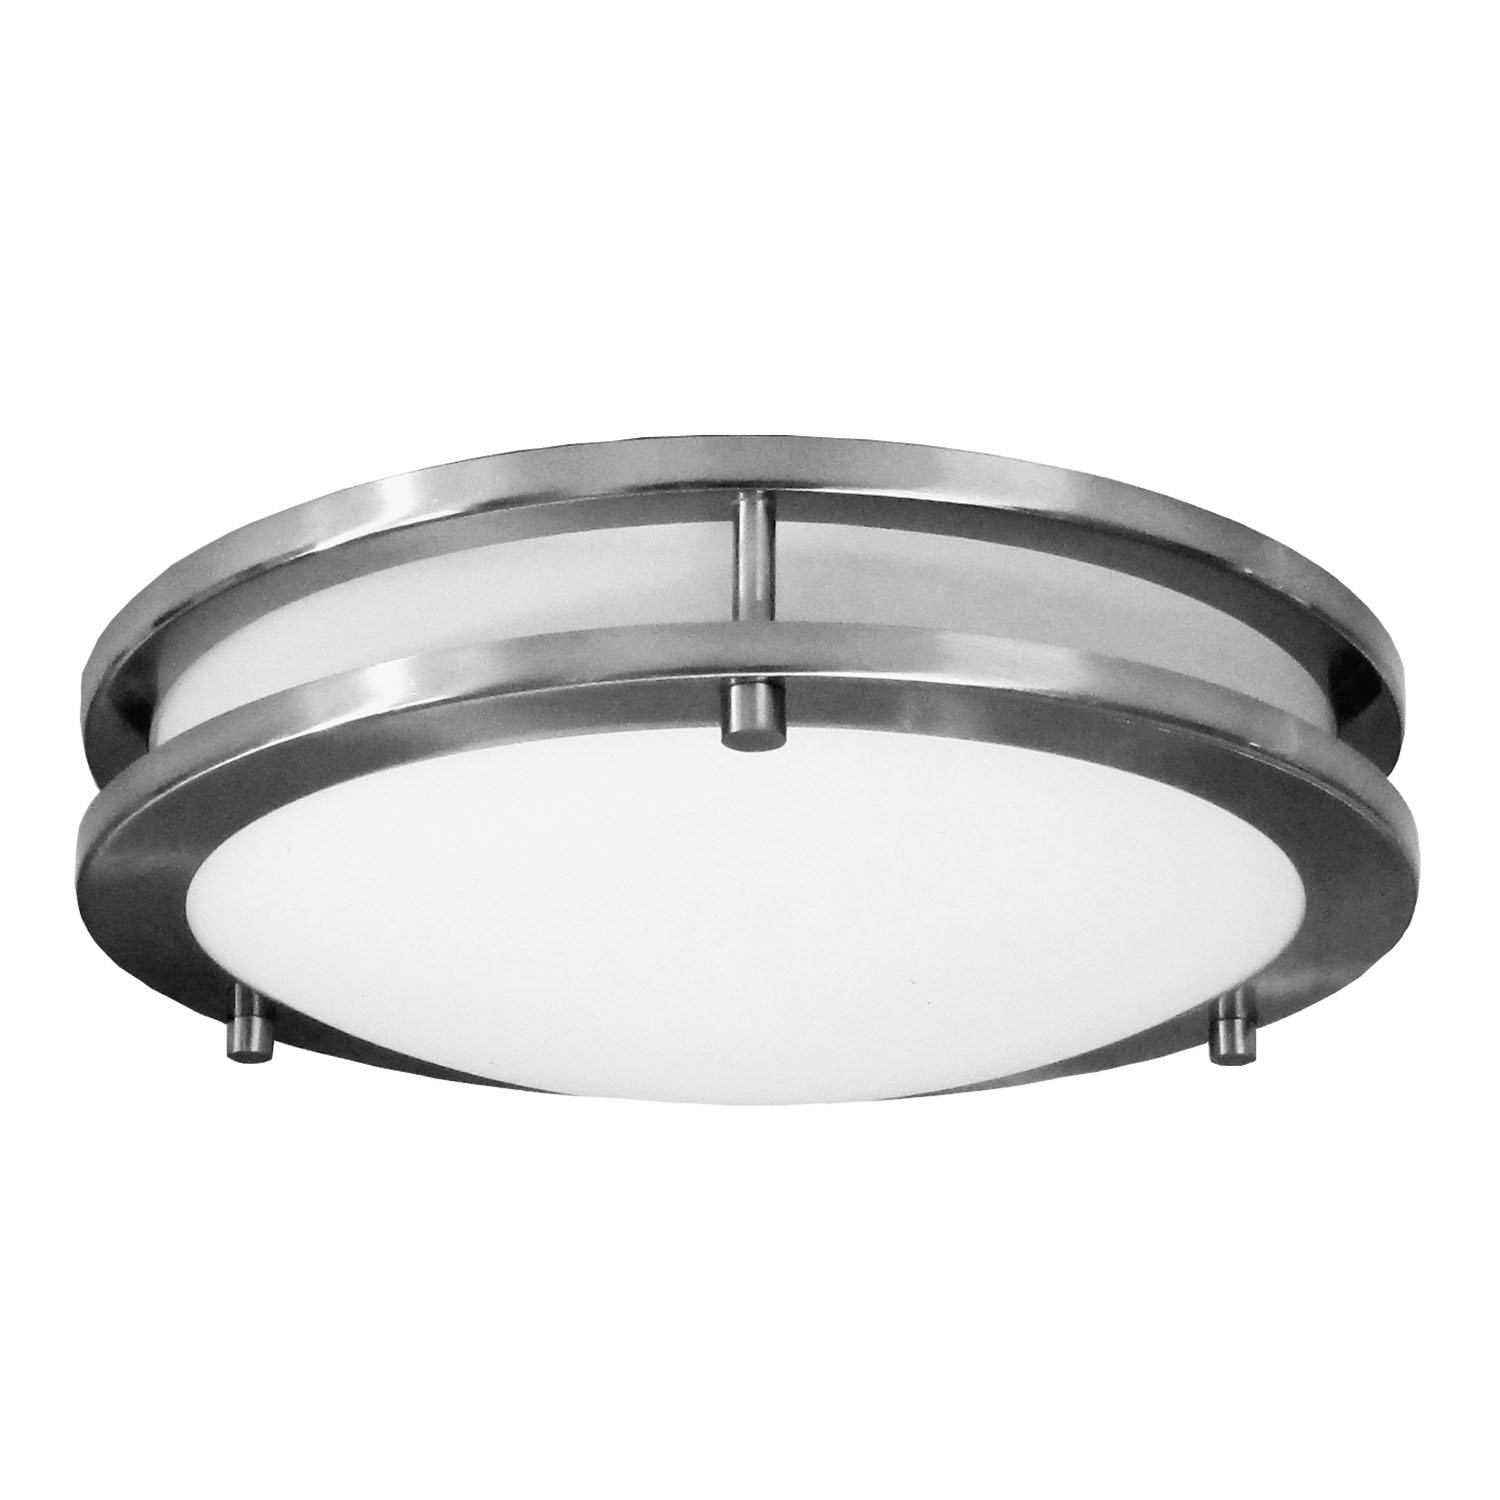 light lighting indoor mount led mounts product ceiling maxim convert flush ceilings